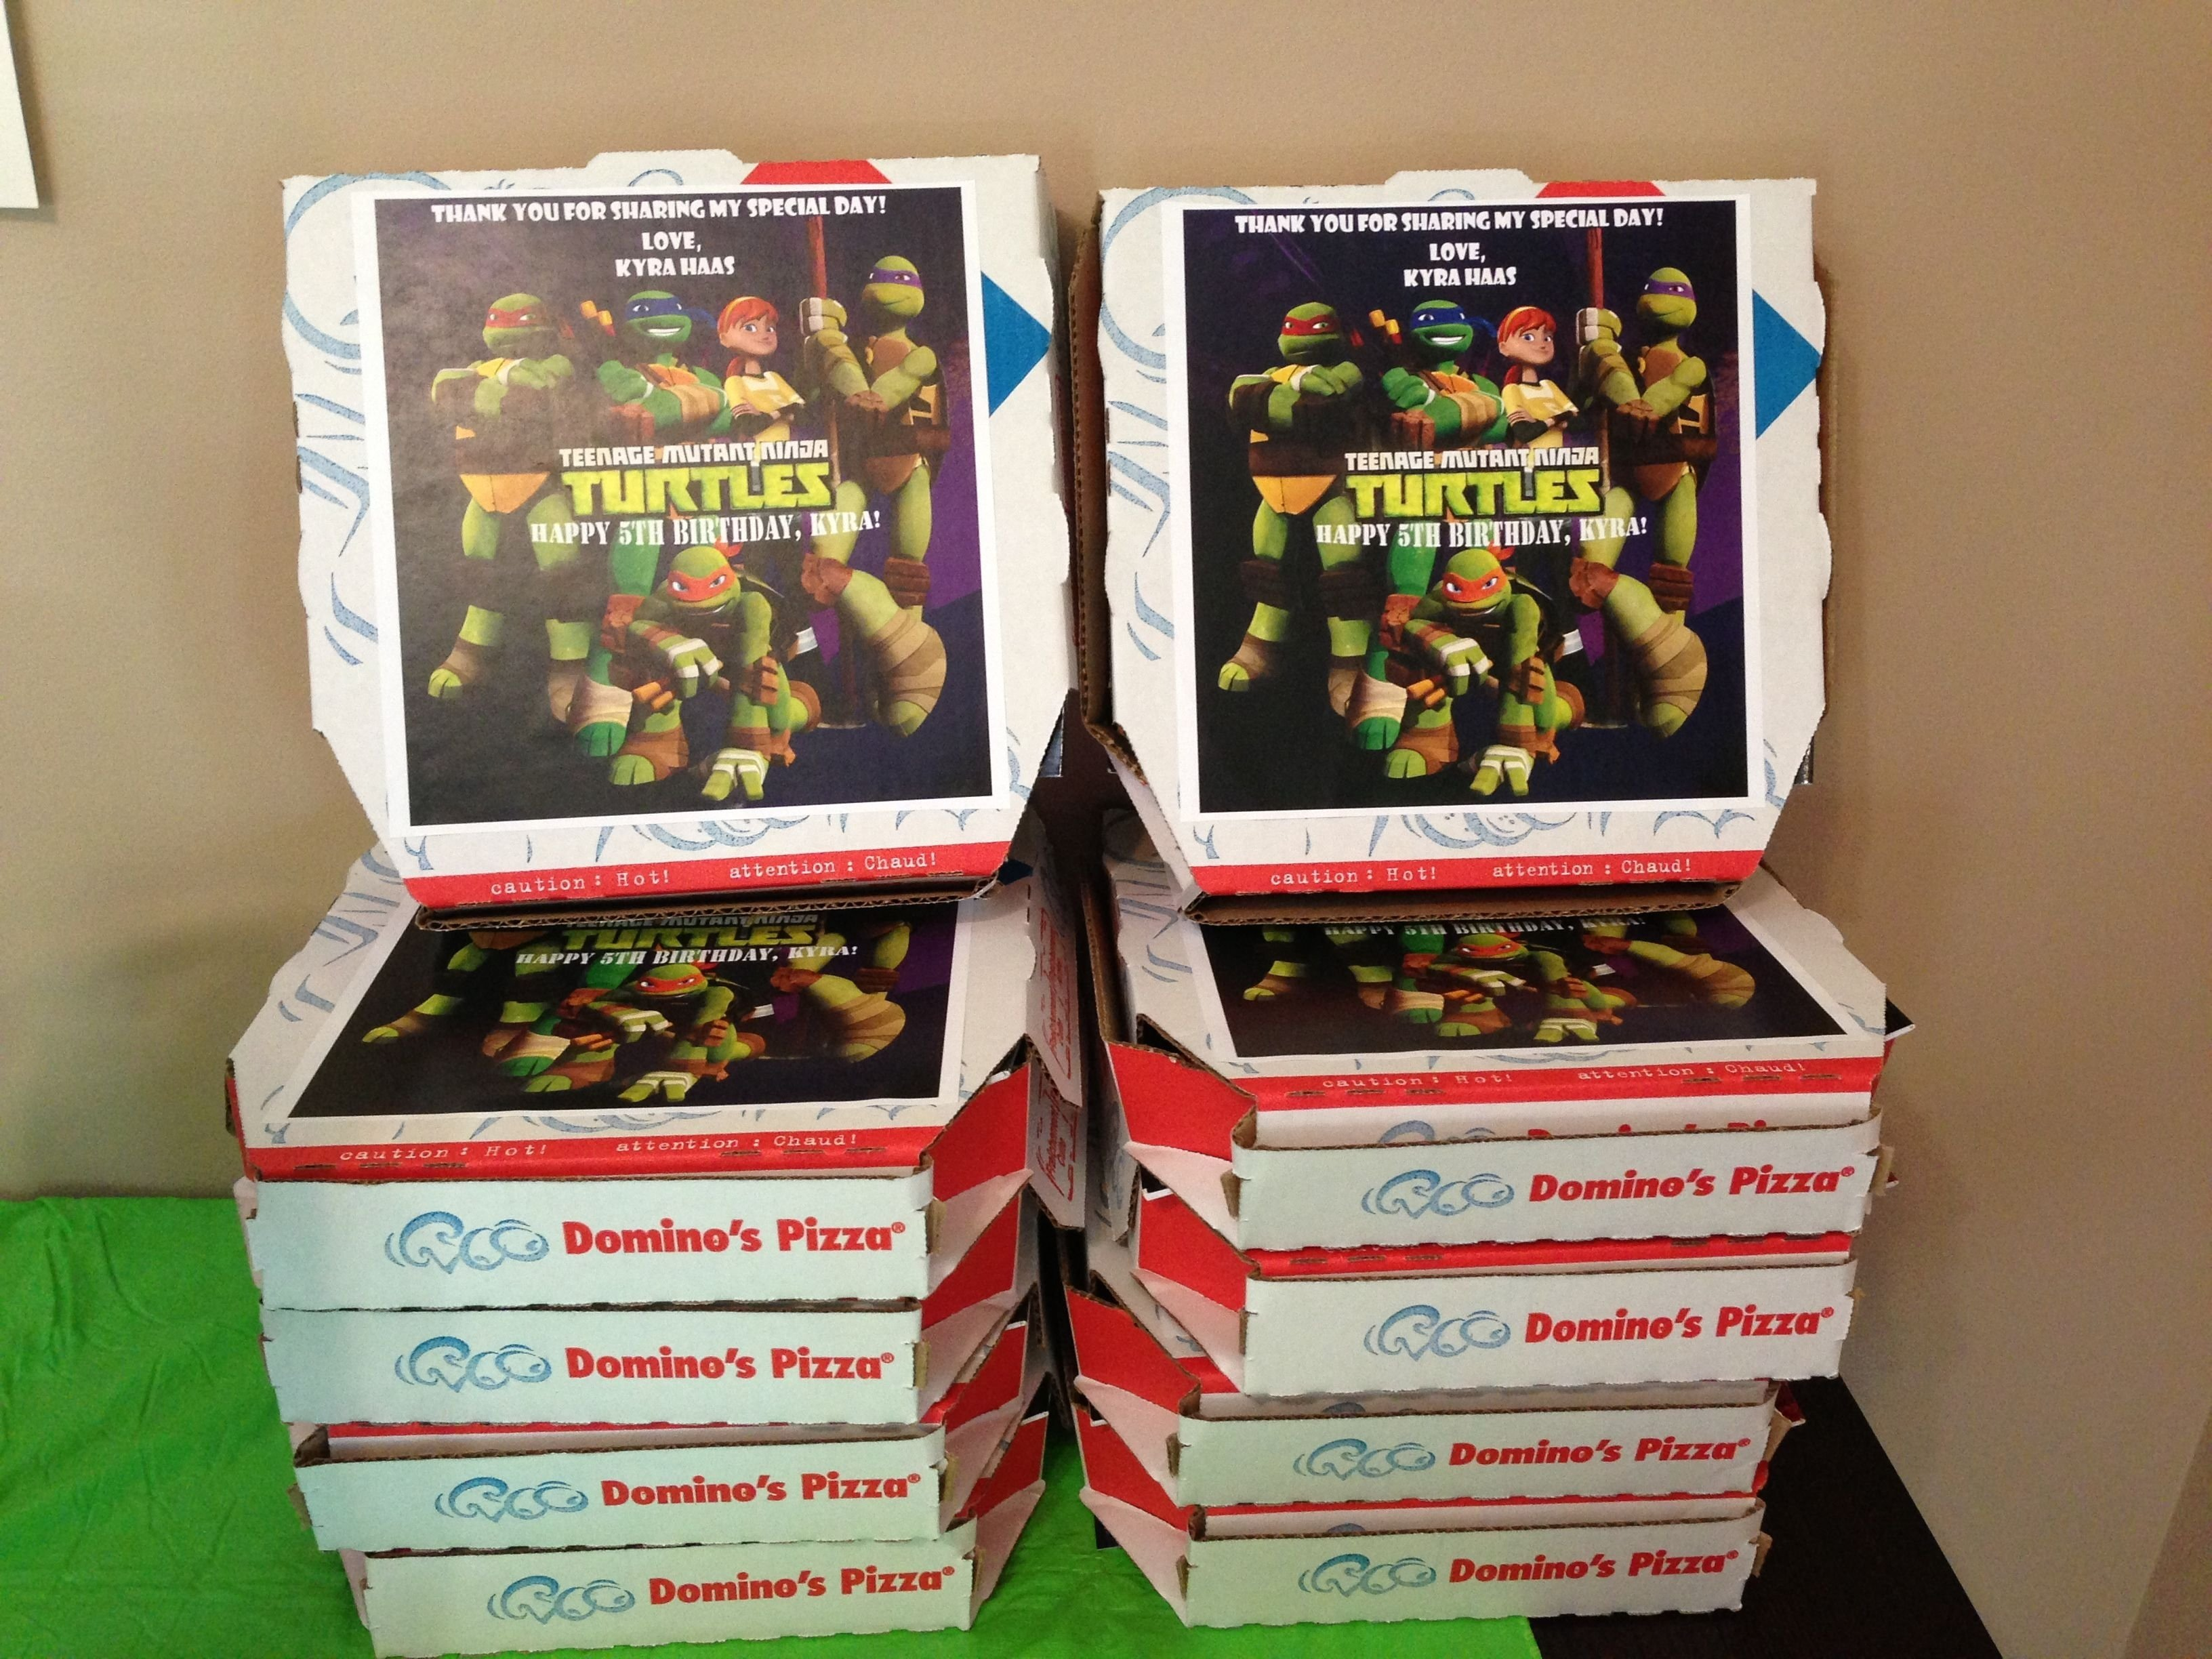 10 Awesome Teenage Mutant Ninja Turtles Party Favor Ideas ninja turtle party favors pizza boxes easy to make and cheap 1